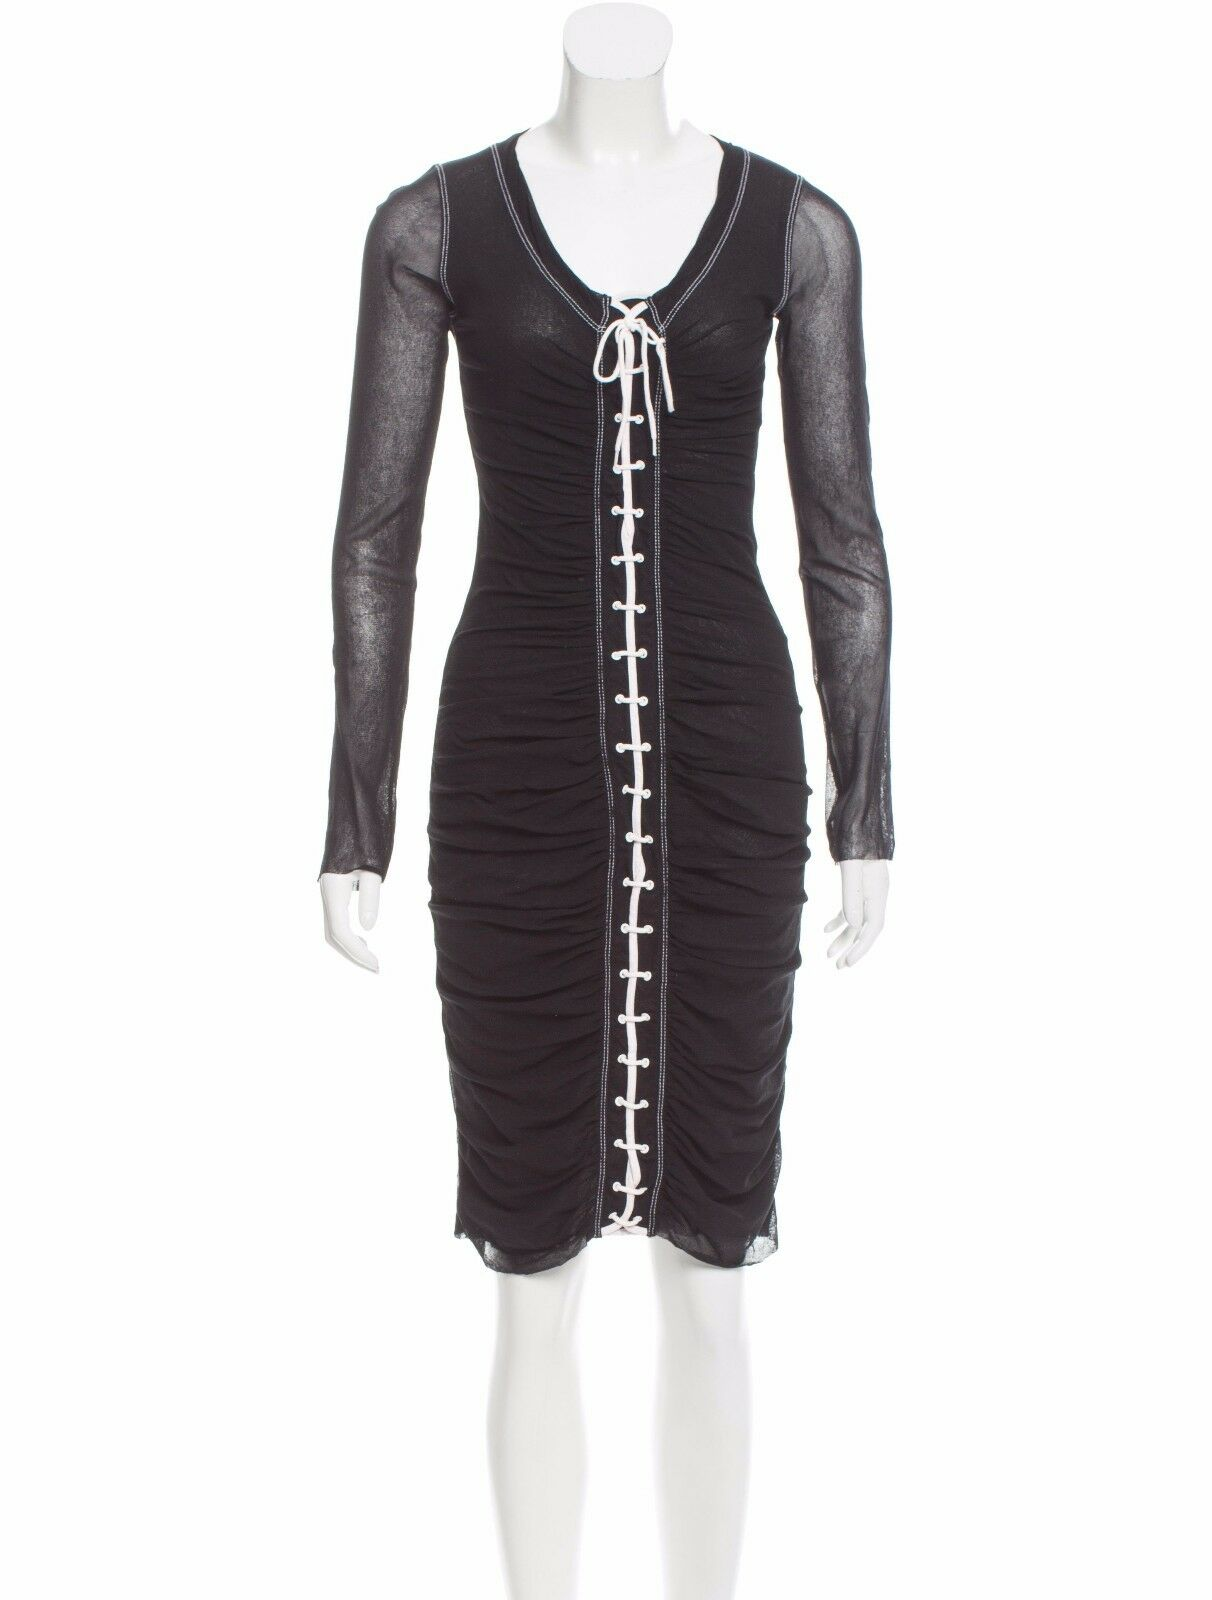 SEXY, UBER FLATTERING NWT JEAN PAUL GAULTIER MESH DRESS WITH WHITE LACE UP FRONT